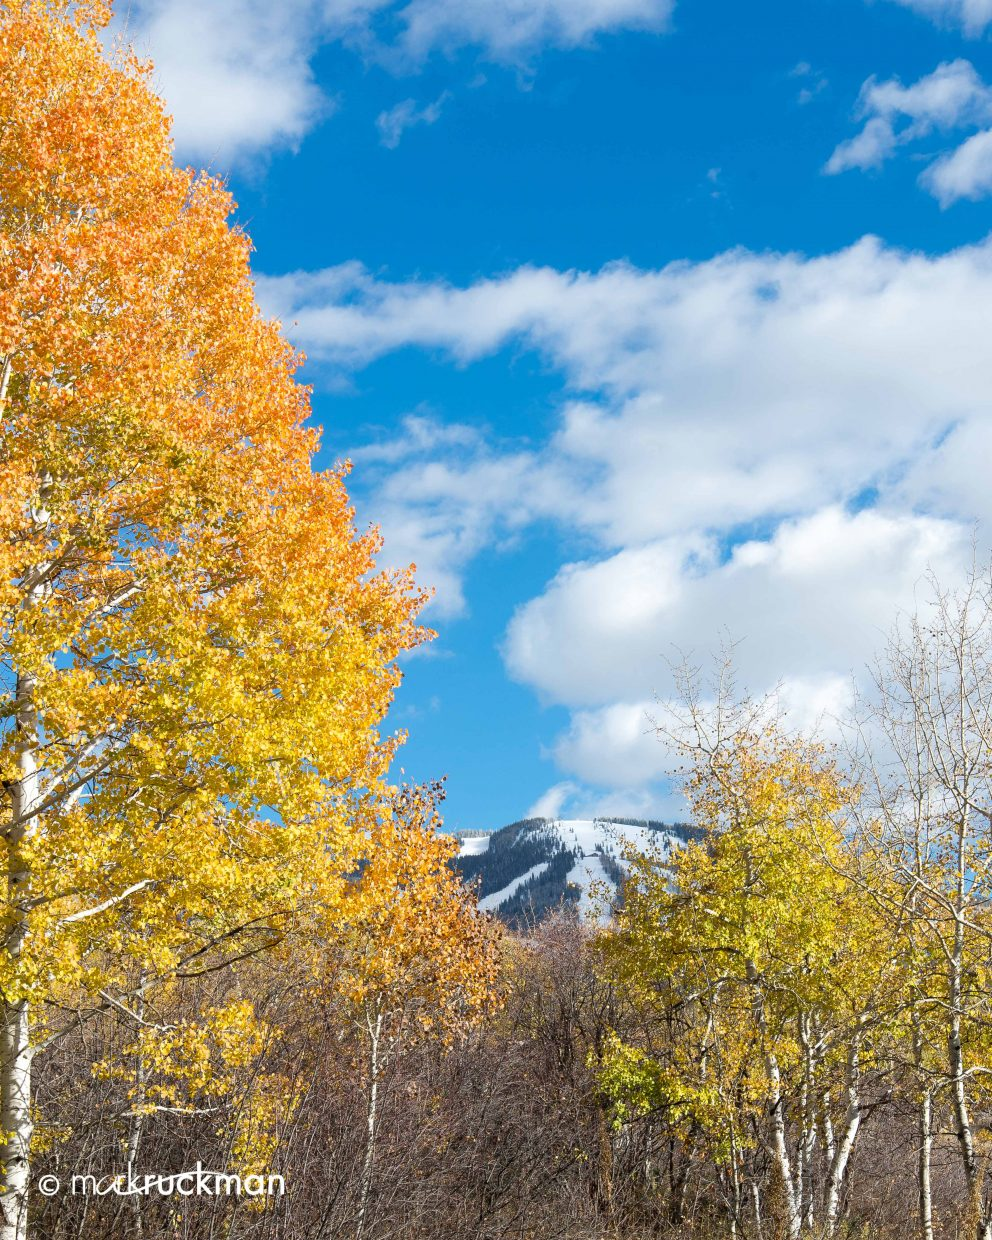 Fading fall colors around Steamboat. Submitted by: Mark Ruckman